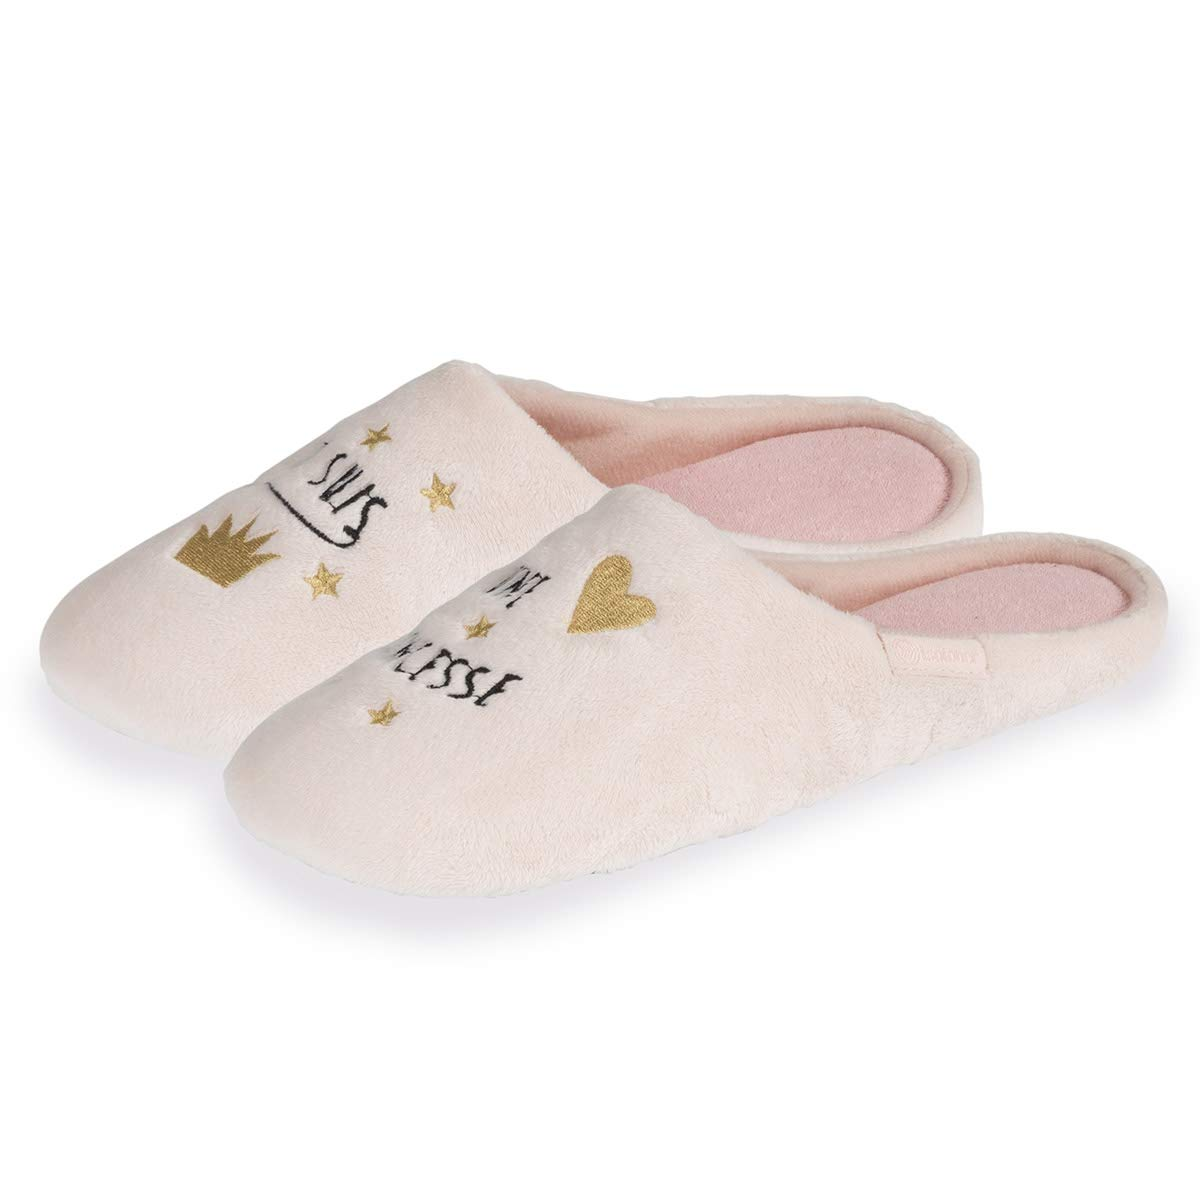 Isotoner Chaussons Mules Femme Broderie Princesse